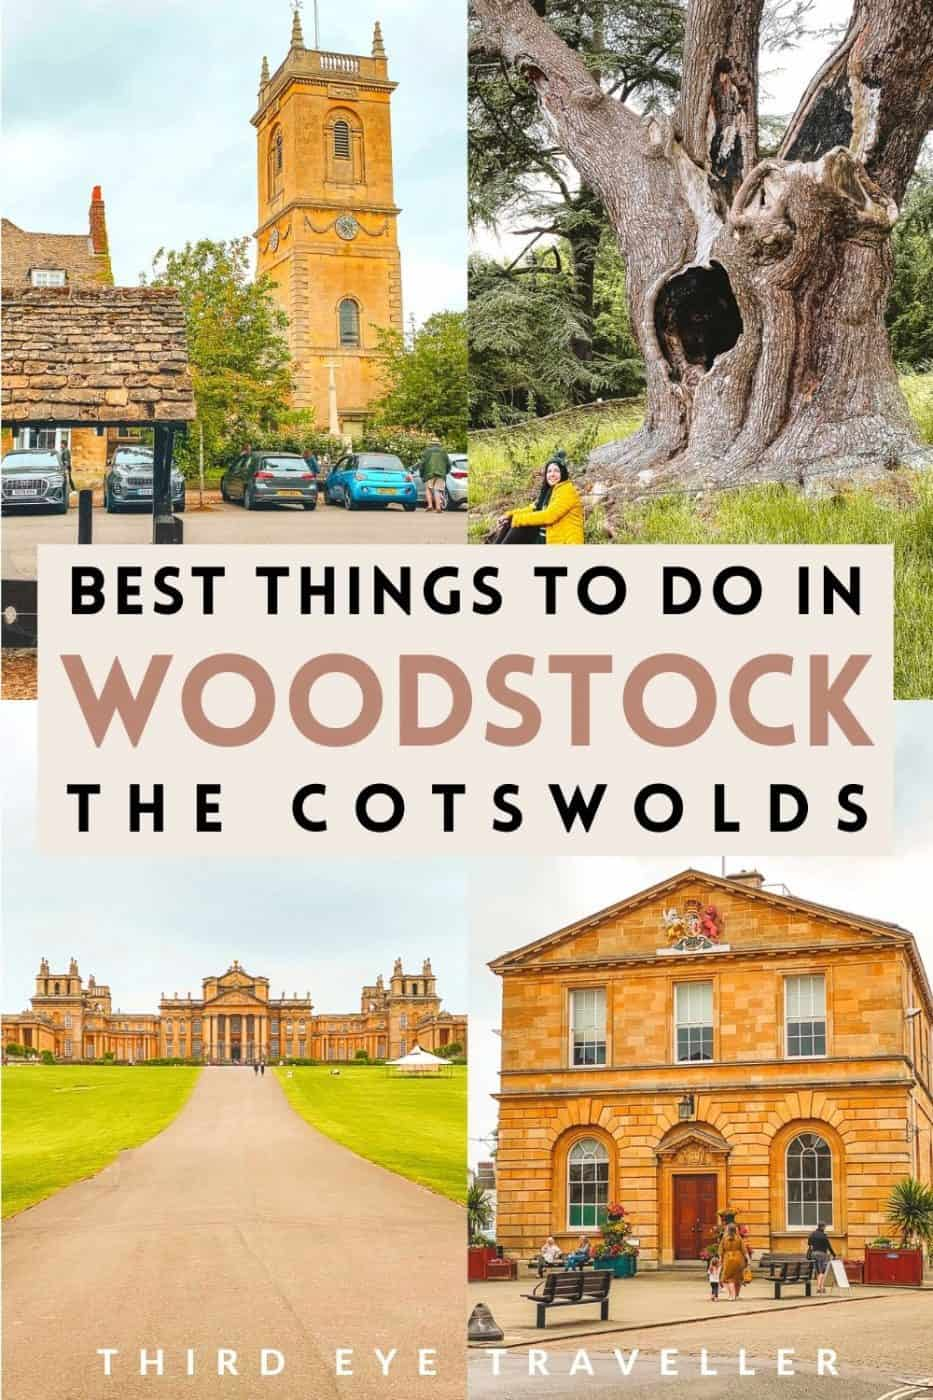 Things to do in Woodstock UK Cotswolds